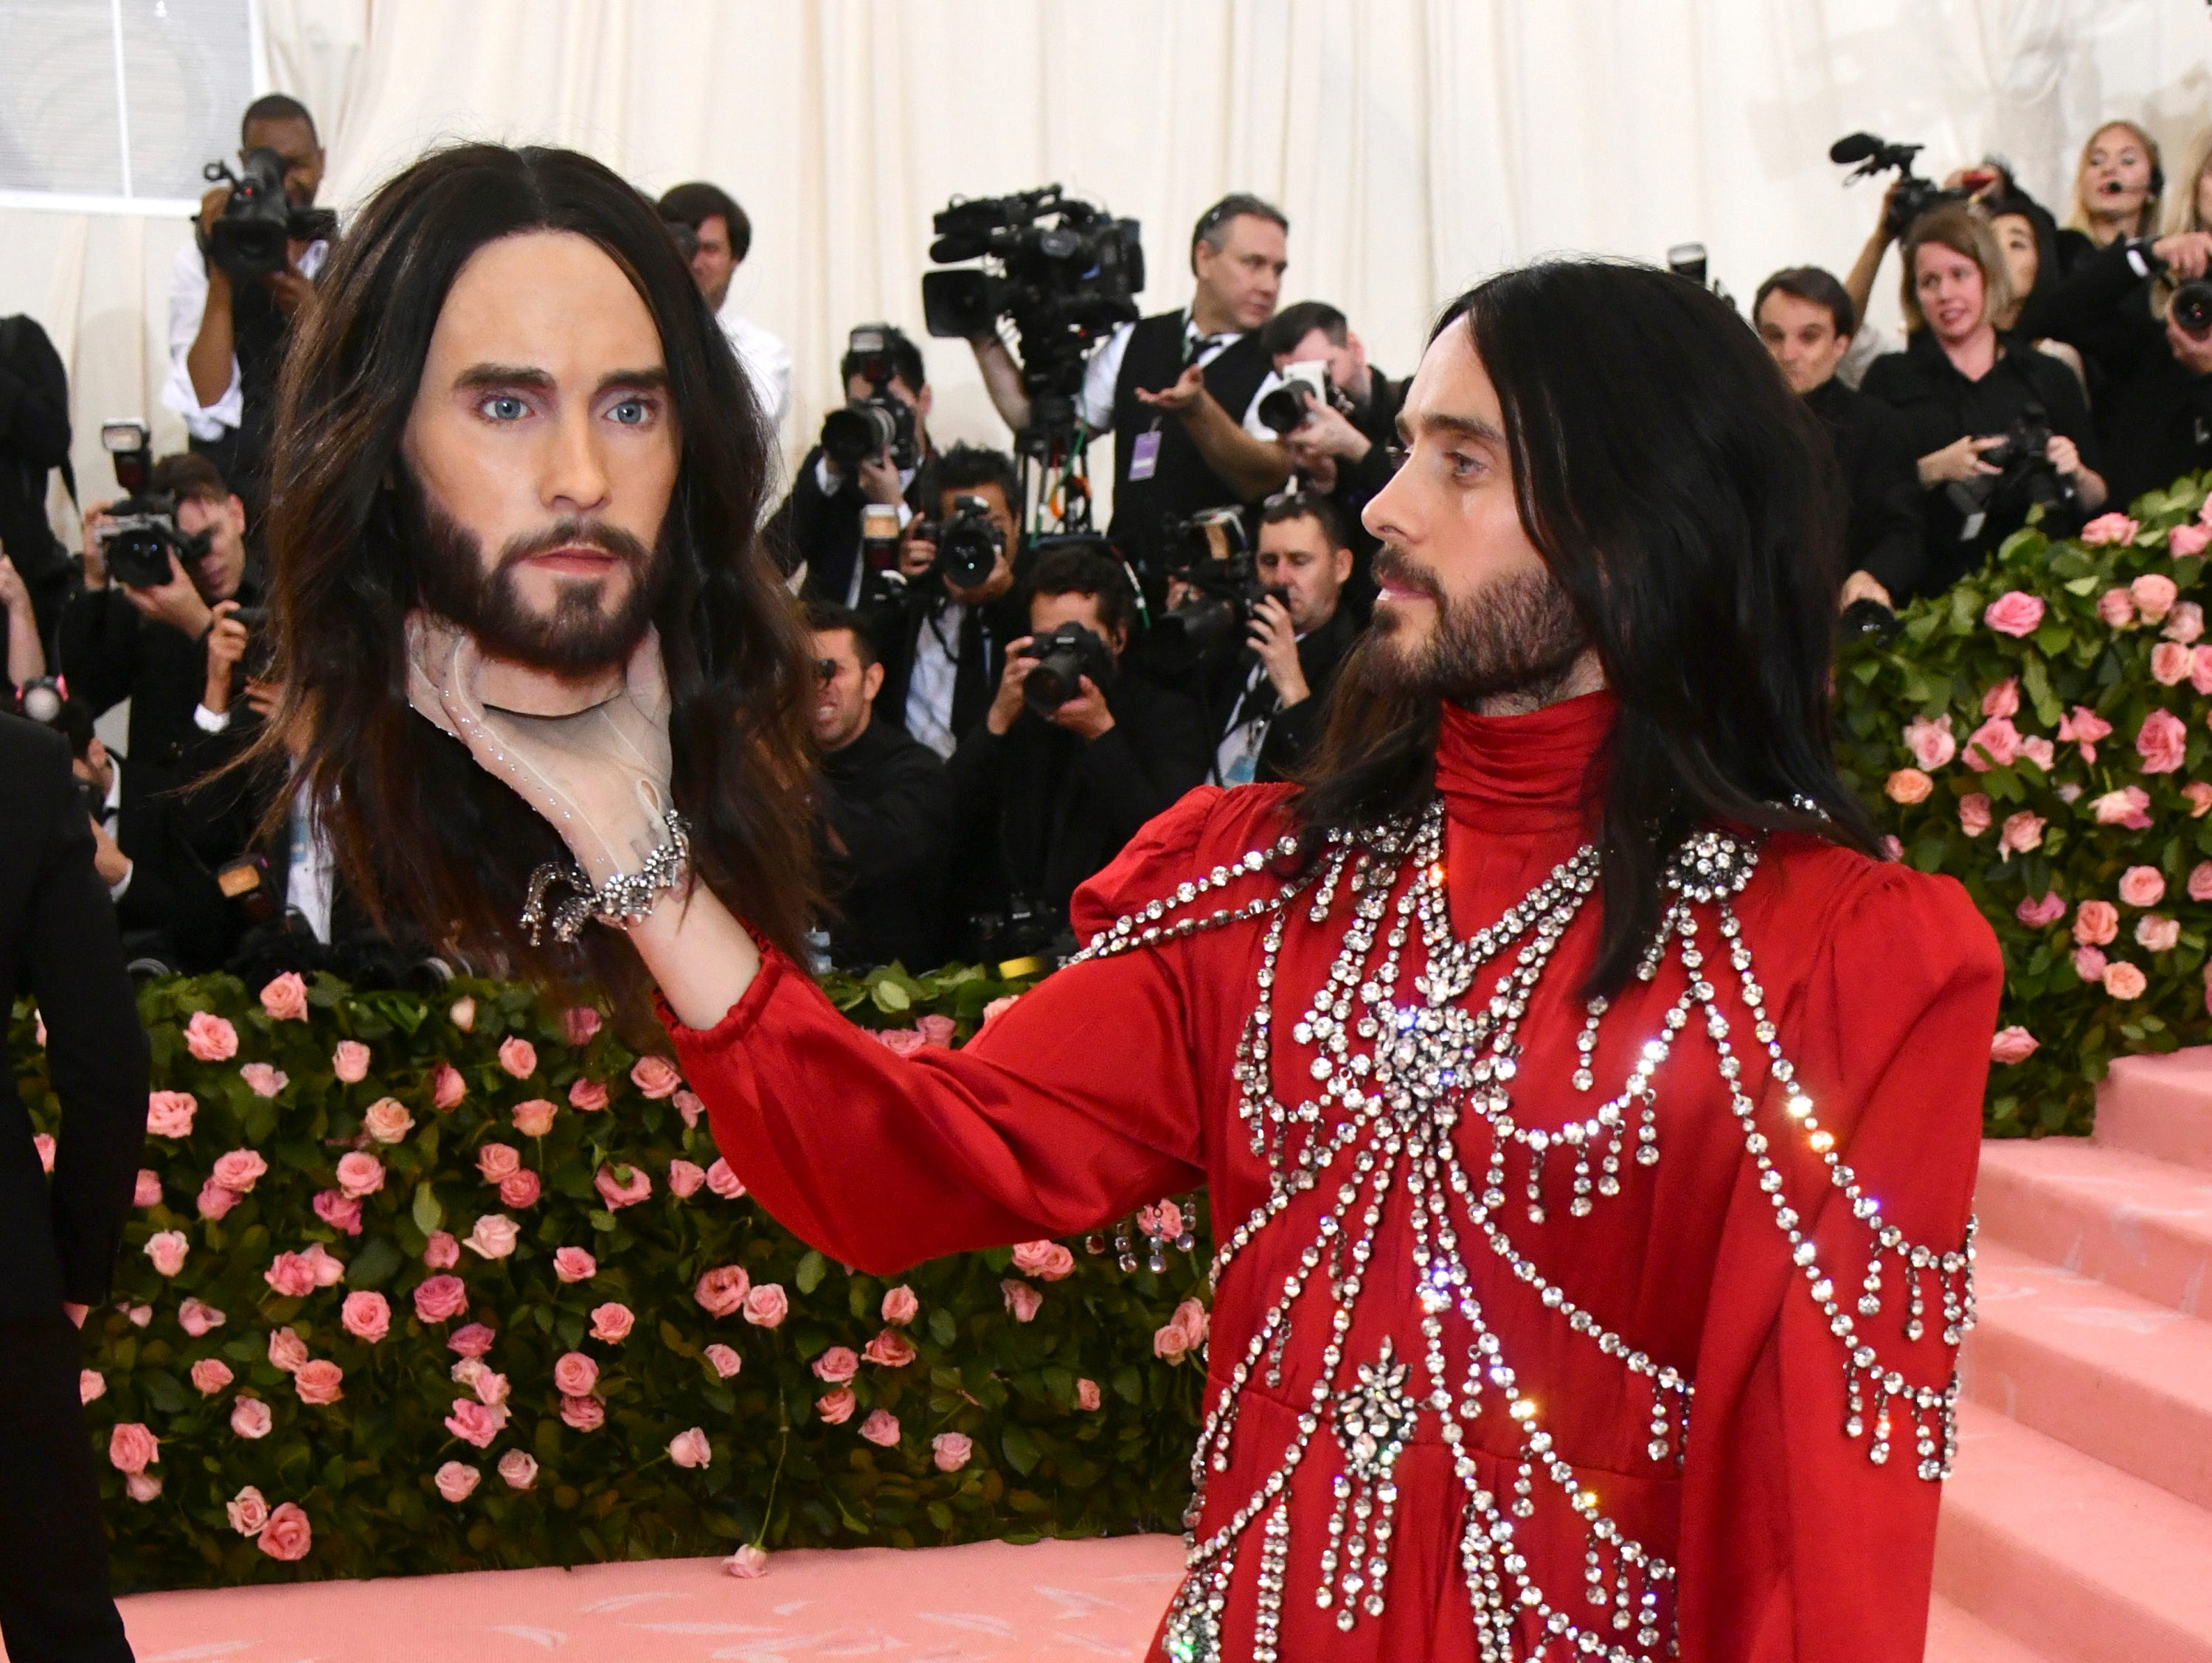 """Jared Leto, holding a model of his own head, attends The Metropolitan Museum of Art's Costume Institute benefit gala celebrating the opening of the """"Camp: Notes on Fashion"""" exhibition on Monday, May 6, 2019, in New York. (Photo by Charles Sykes/Invision/AP) ORG XMIT: NYJW224"""